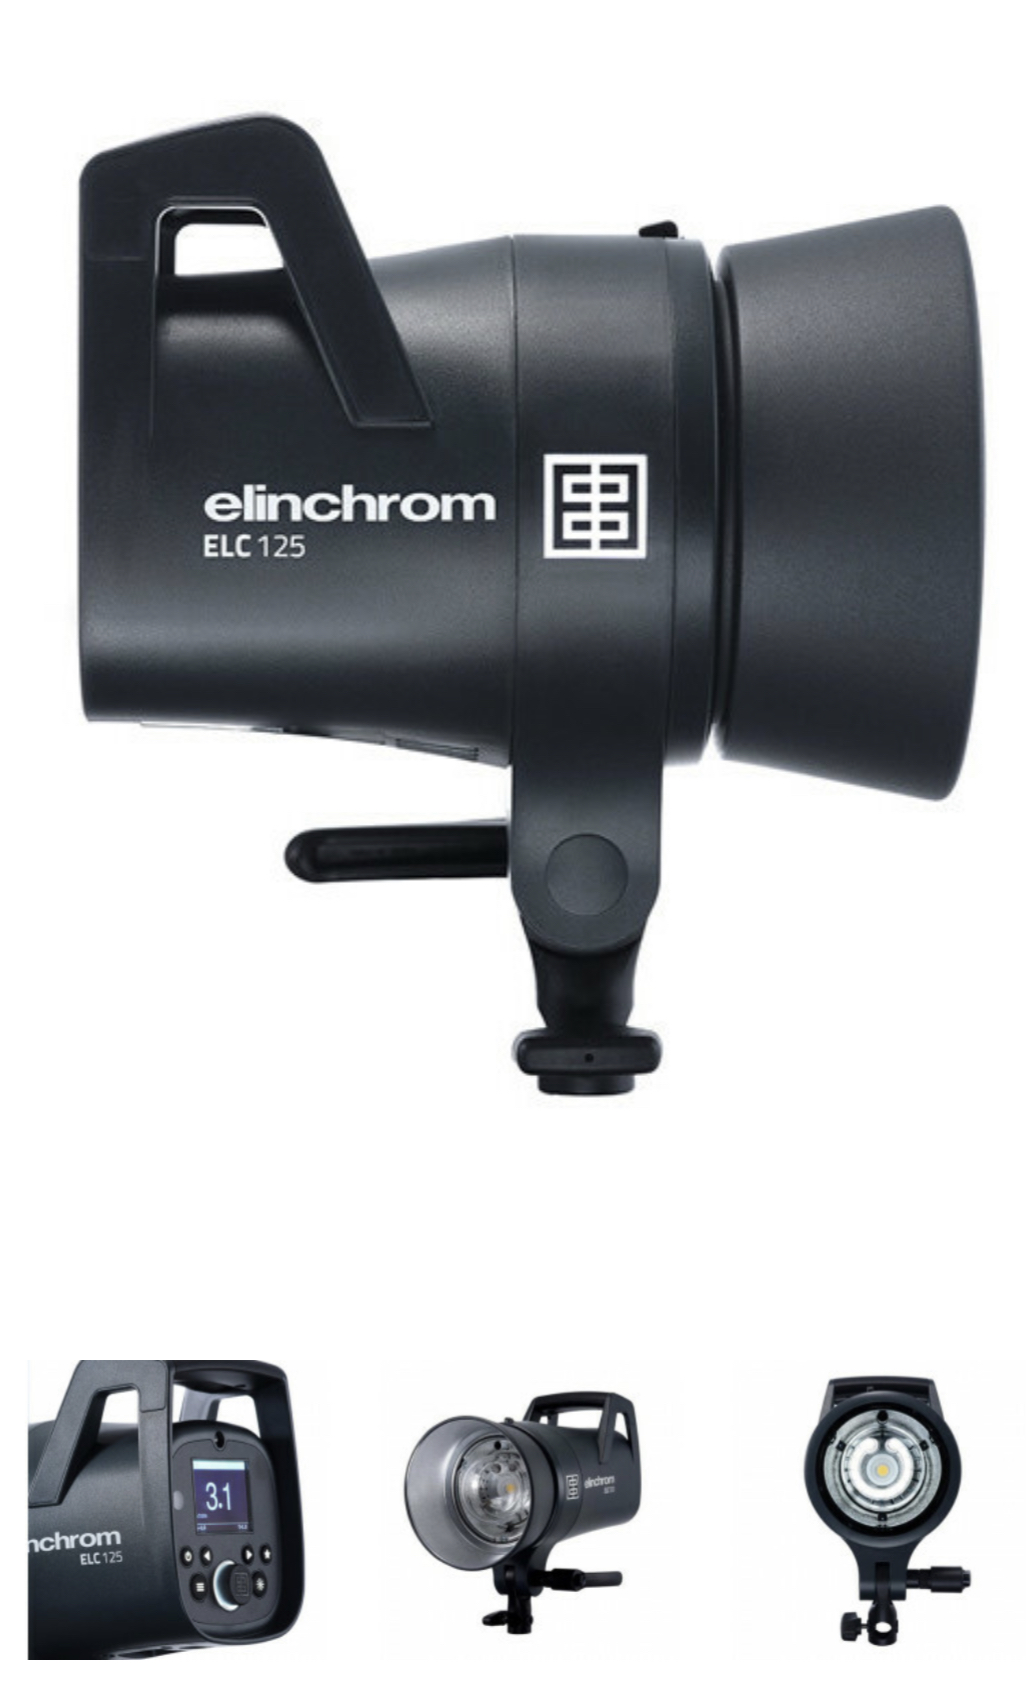 1 Flash Elinchrom ELC 125